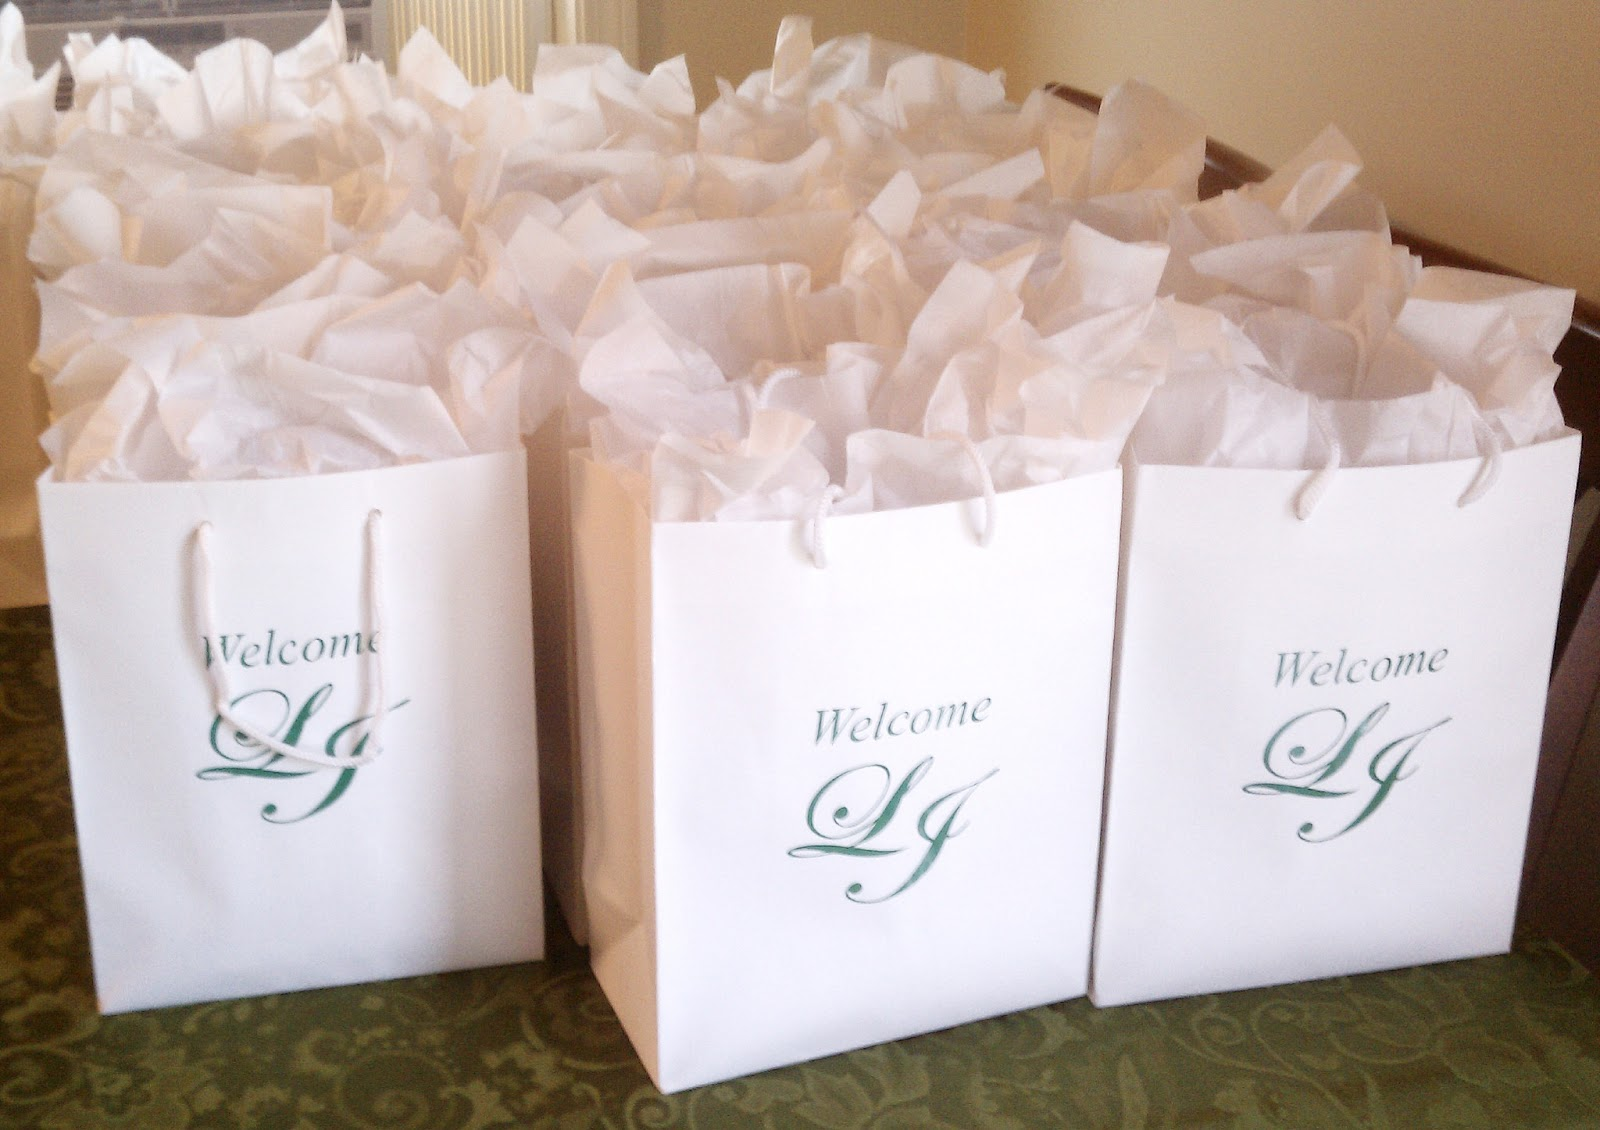 Wedding Gift Bags Online : Eutopia Events: Wedding Day Welcome Bags